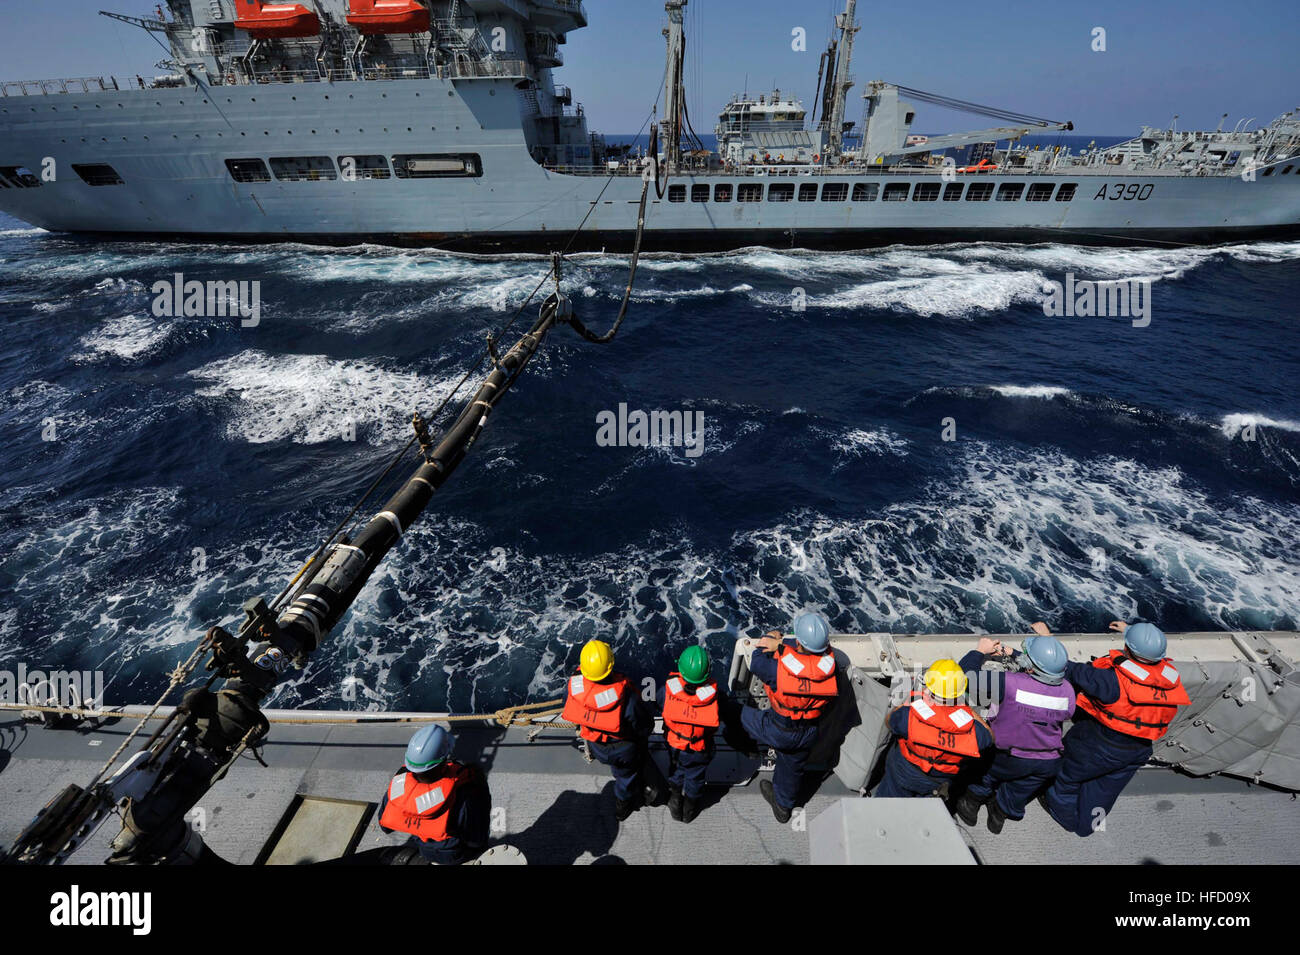 ARABIAN SEA (Nov. 6, 2012) Sailors aboard the guided-missile destroyer USS Jason Dunham (DDG 109) conduct a replenishment - Stock Image